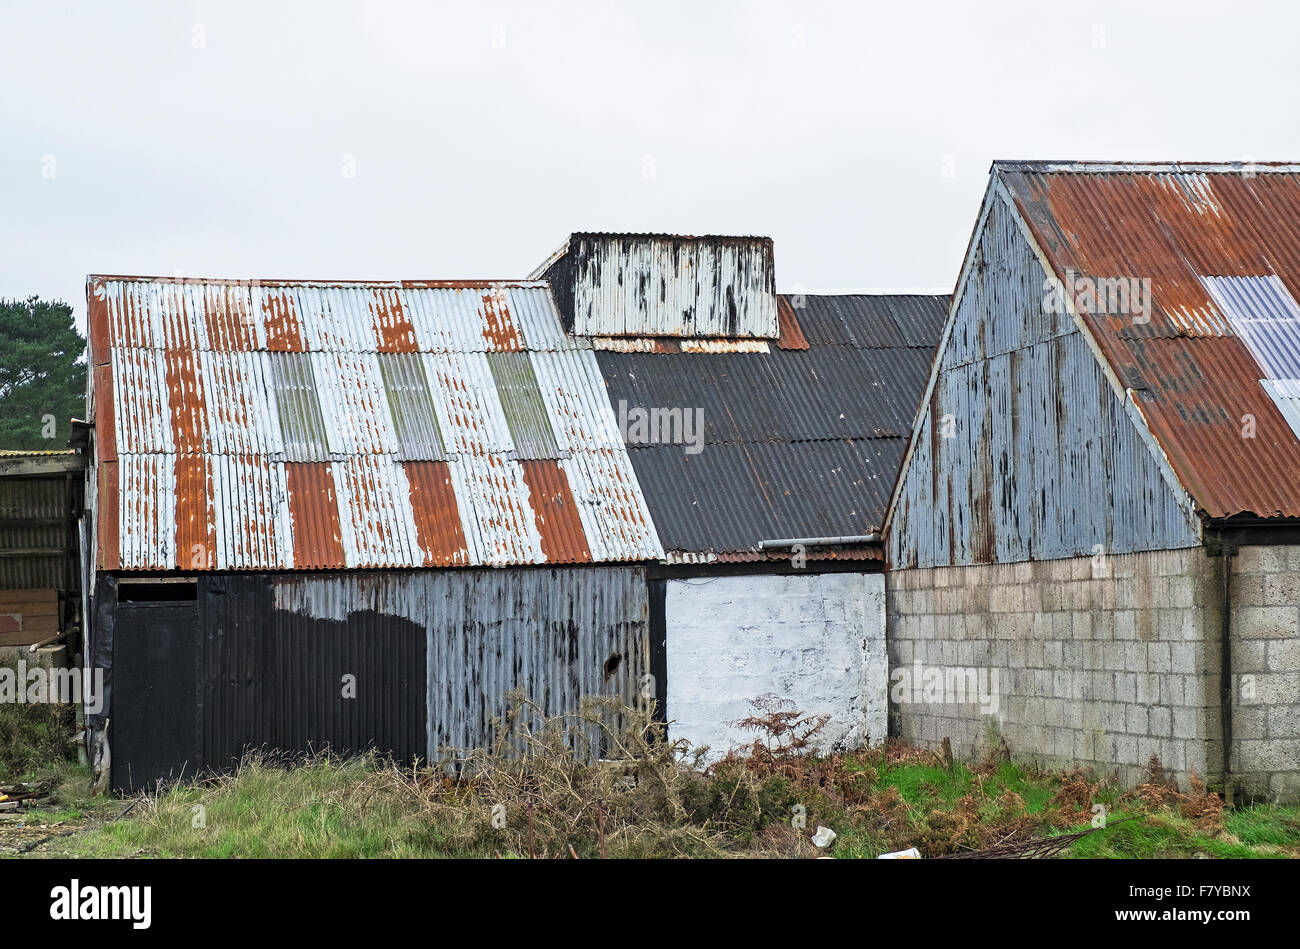 farm buildings made from galvanised corrugated steel sheeting - Stock Image